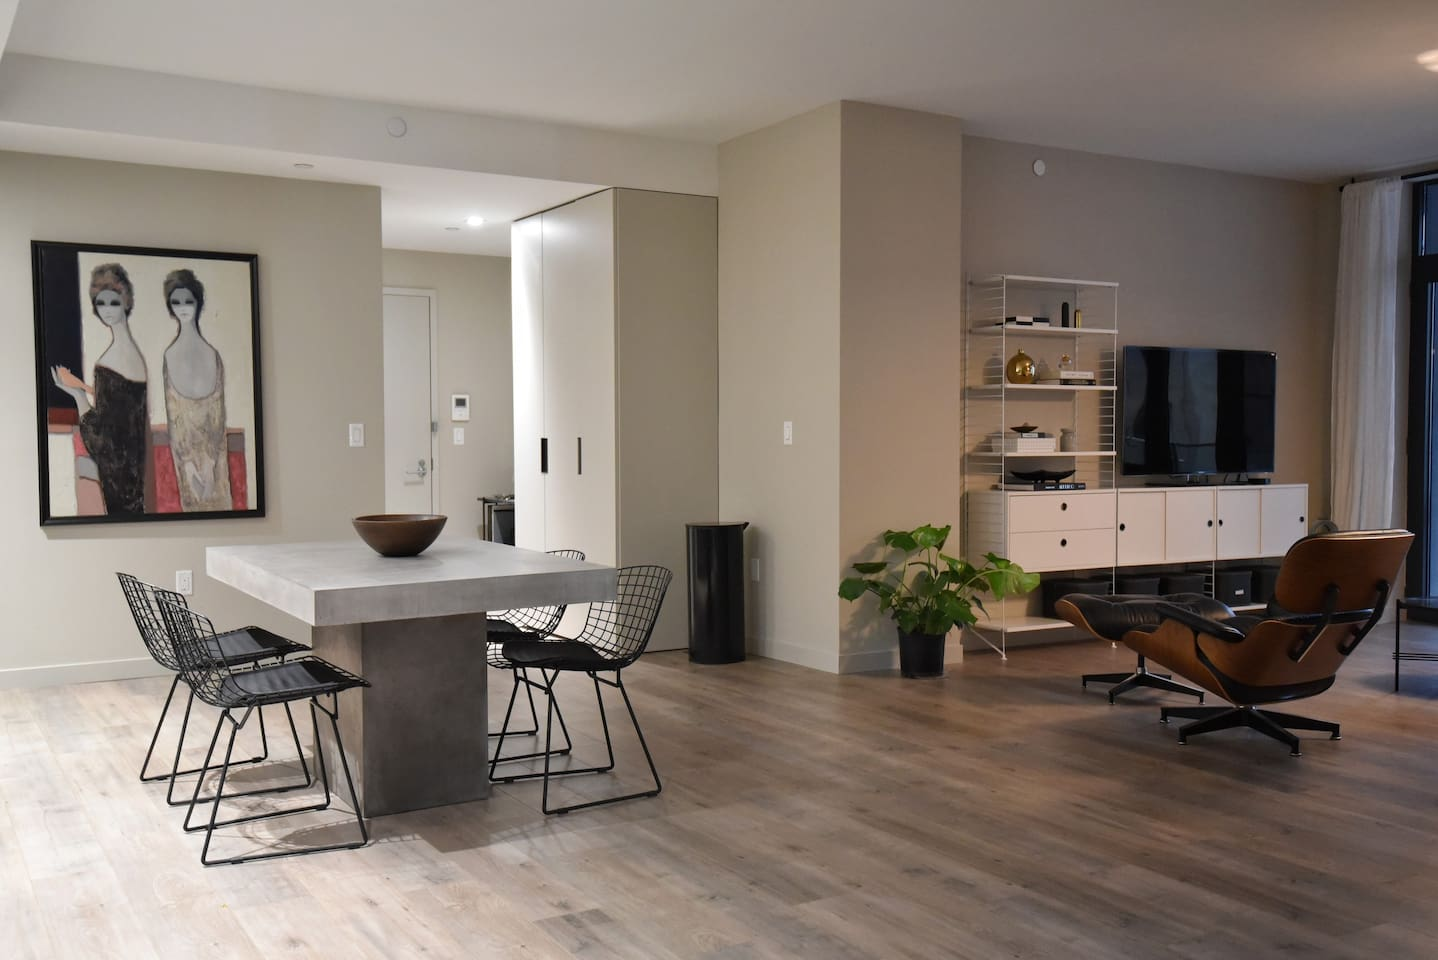 Massive and modern open place space